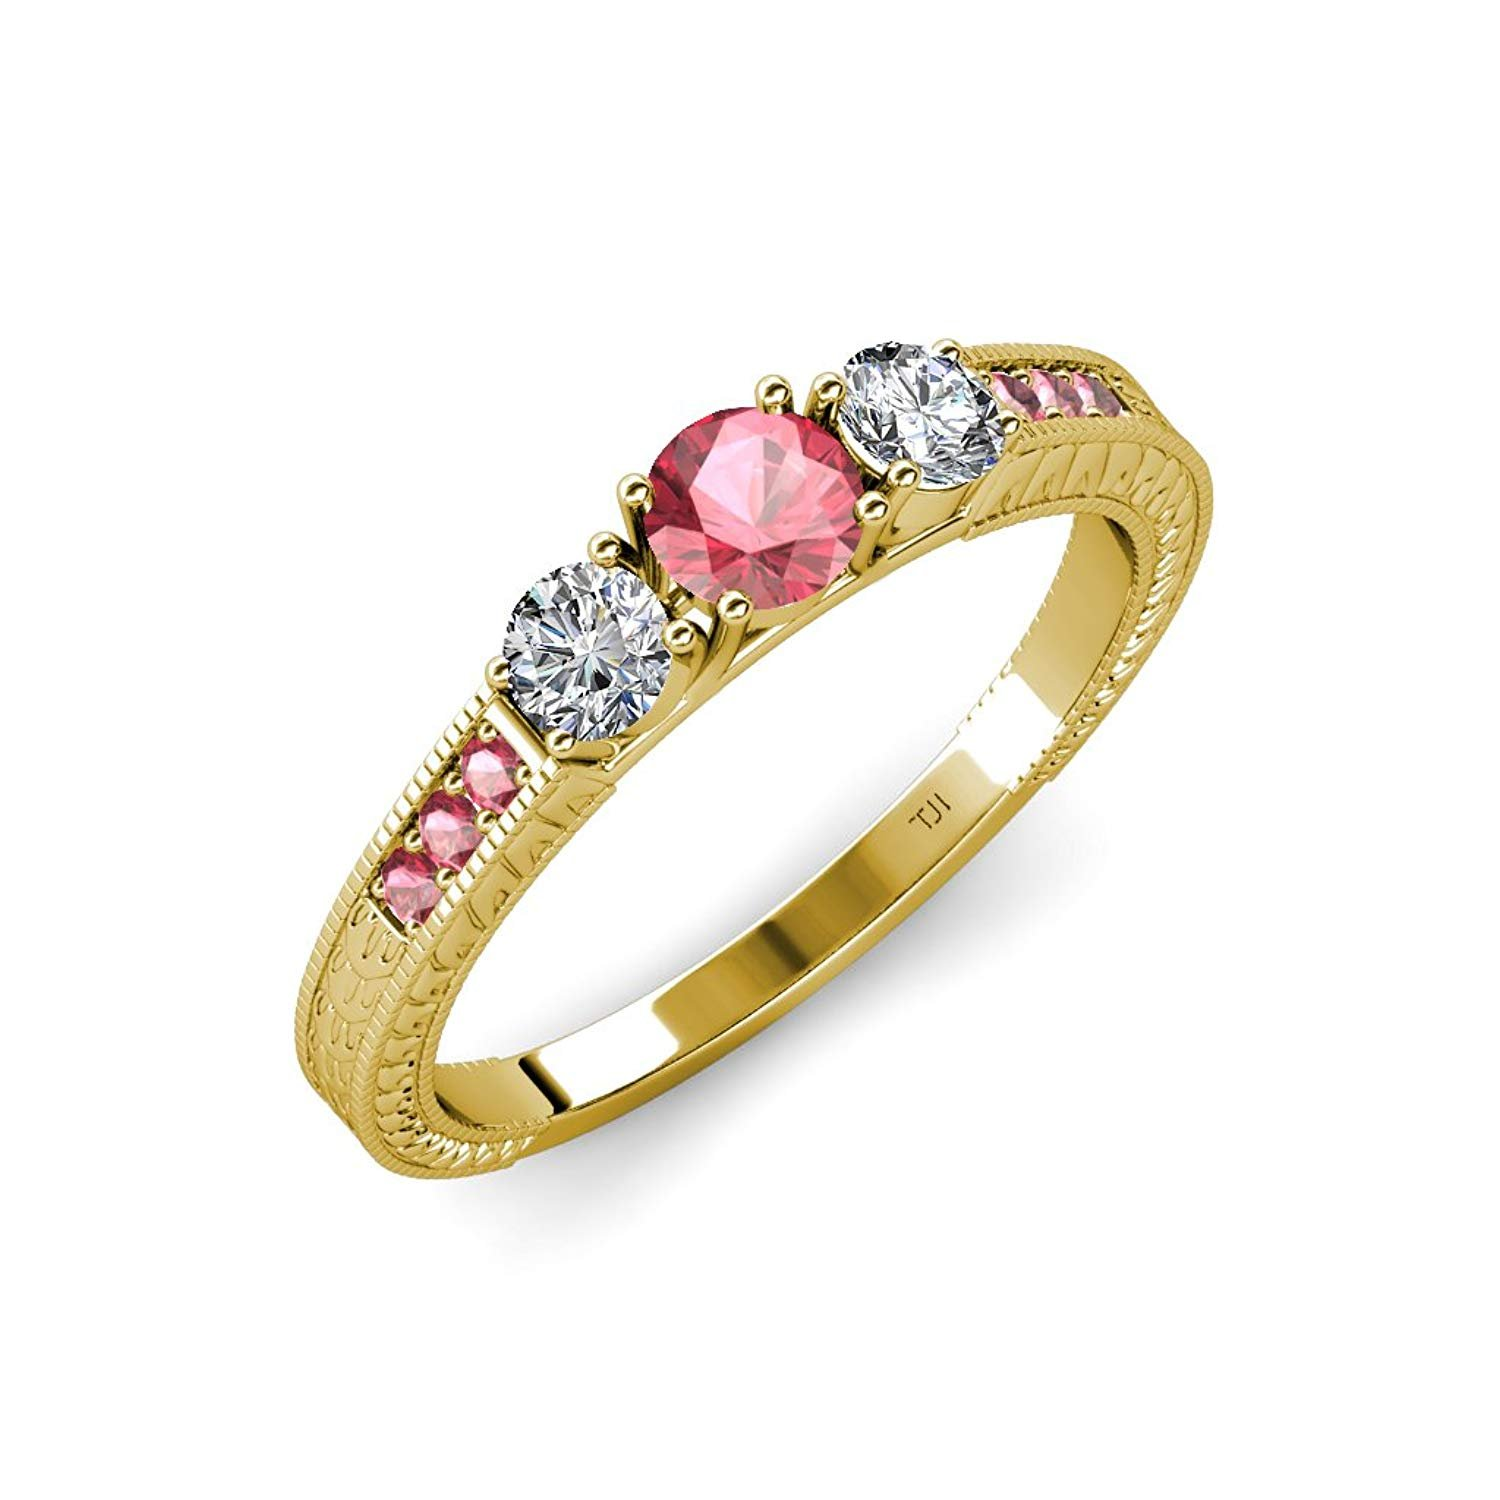 Pink Tourmaline and Diamond 3 Stone Ring with Side Pink Tourmaline 0.85 ct tw 14K Yellow Gold.size 5.0 by TriJewels